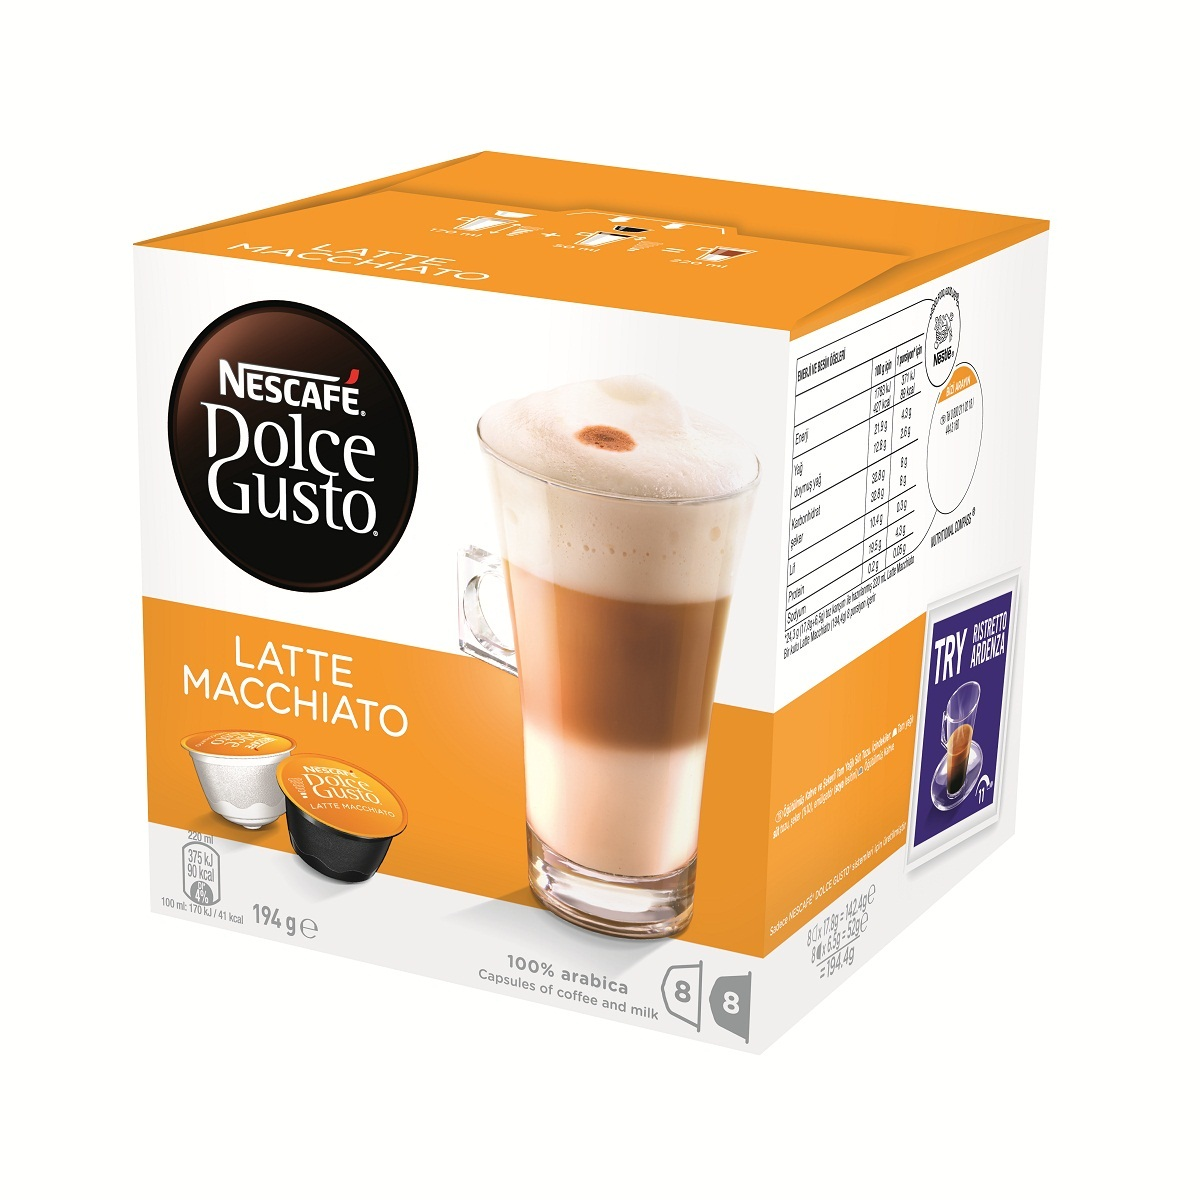 nescafe dolce gusto latte macchiato 8 coffee 8 milk pods. Black Bedroom Furniture Sets. Home Design Ideas